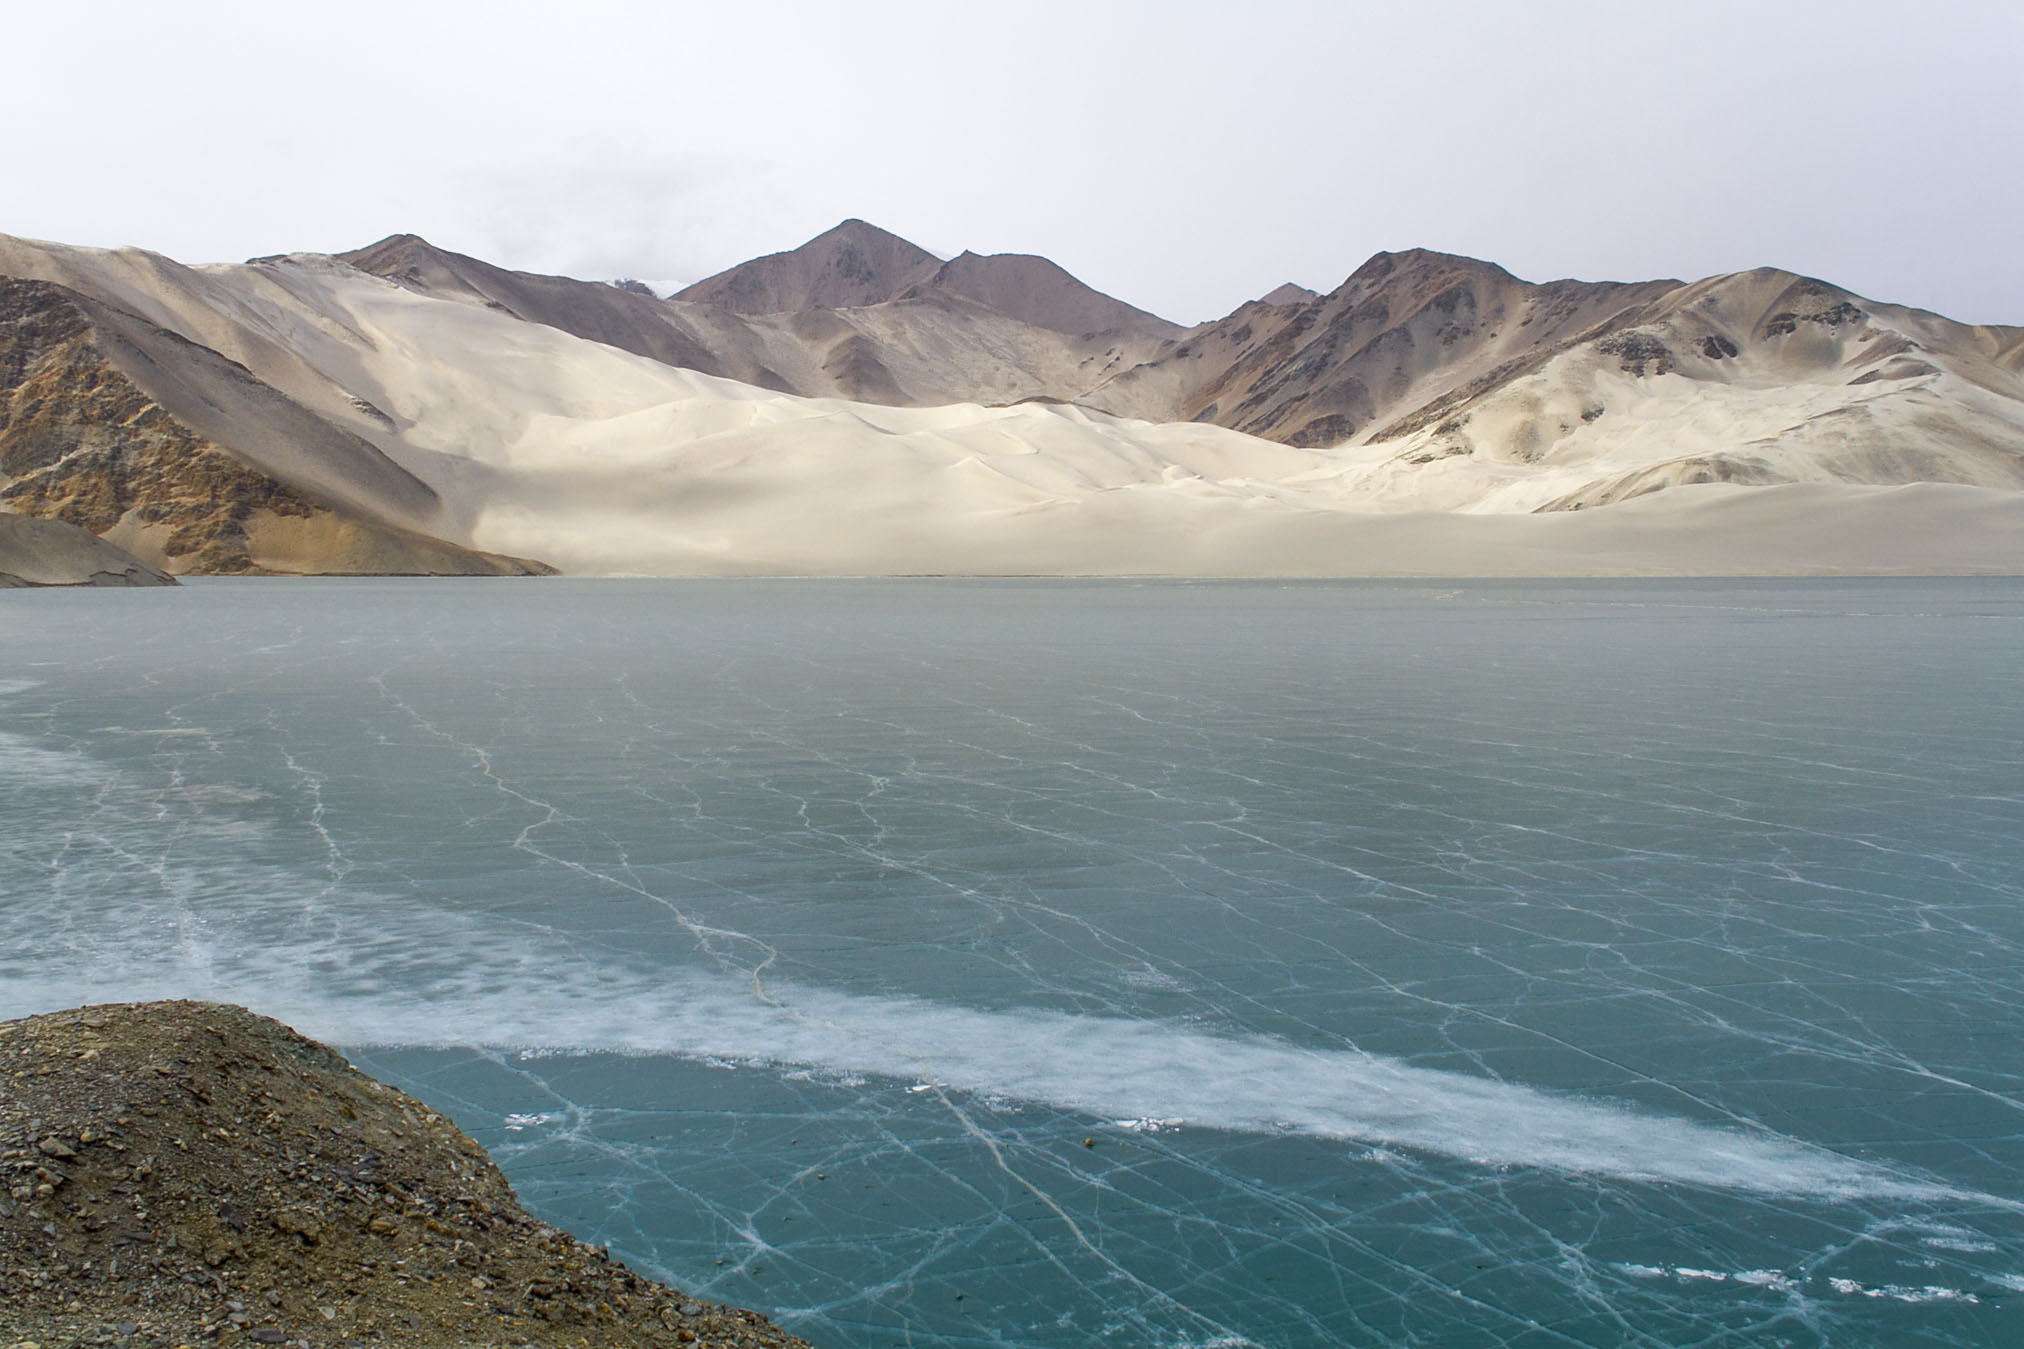 Bulungkol Lake, Karakoram Highway, Xinjiang, China